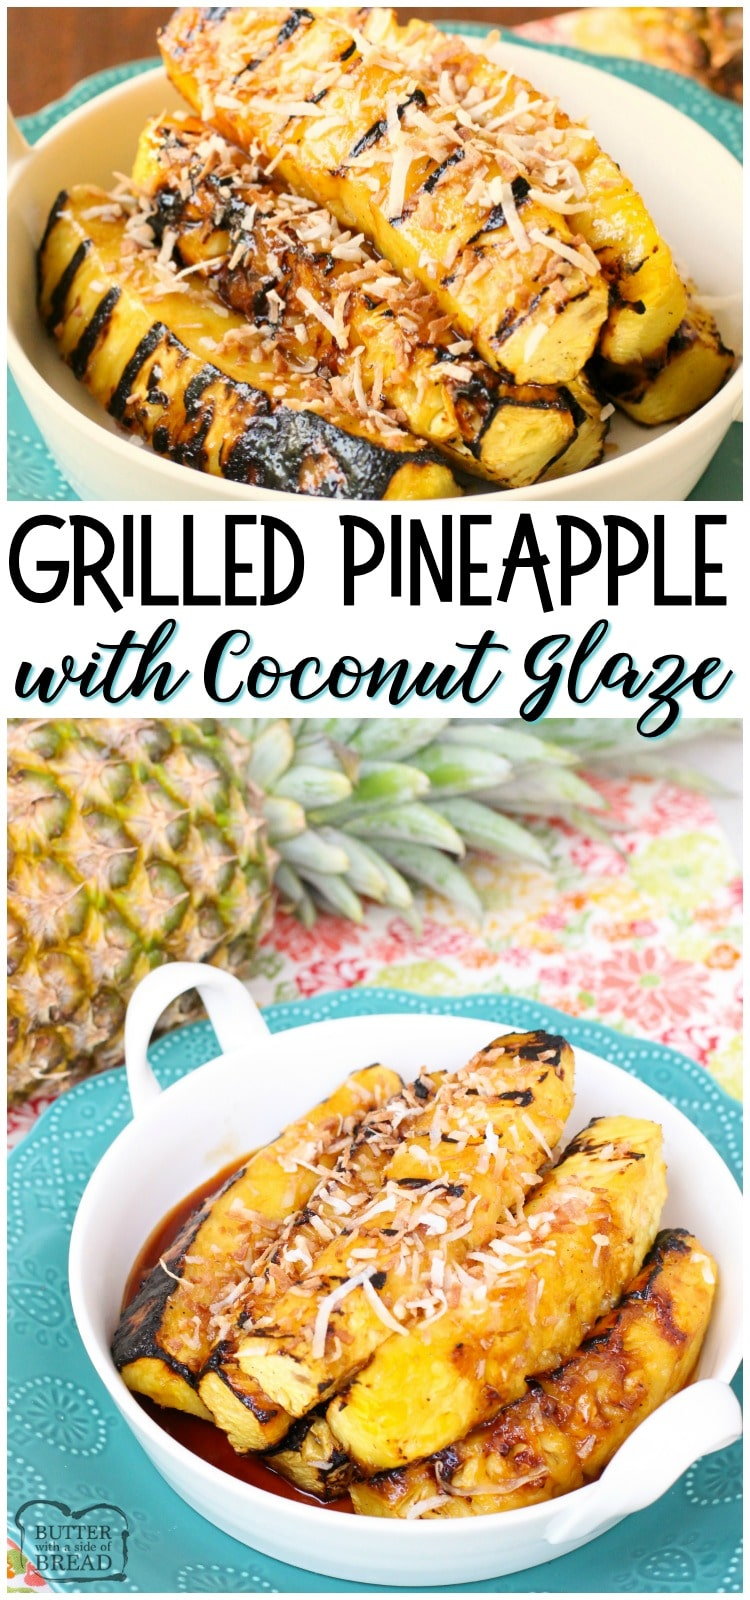 Grilled Pineapple with Coconut glaze is a fantastic side dish or dessert! Made easy with coconut, brown sugar and fresh pineapple, this is the best grilled pineapple I've tasted! #pineapple #grilling #coconut #recipe from BUTTER WITH A SIDE OF BREAD